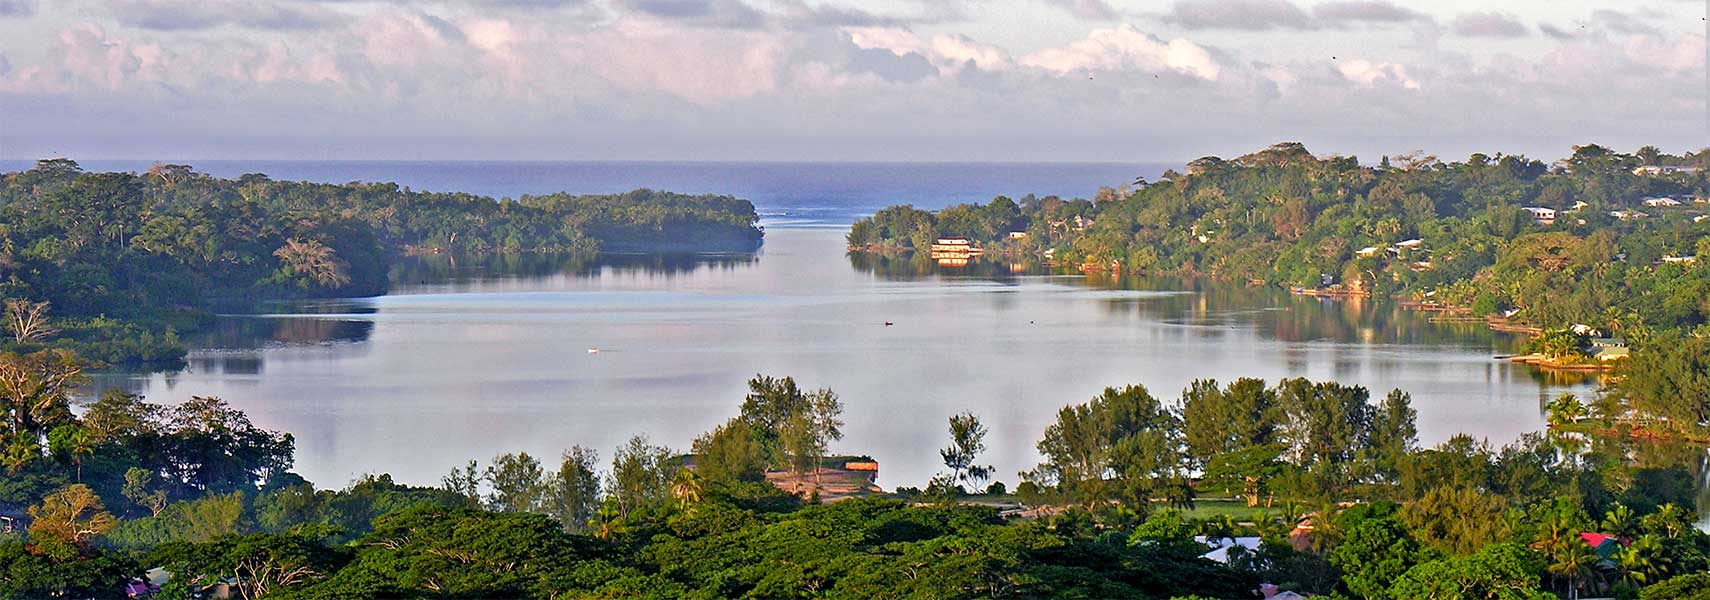 Where Is Vanuatu Located On A World Map.Vanuatu Country Profile Nations Online Project